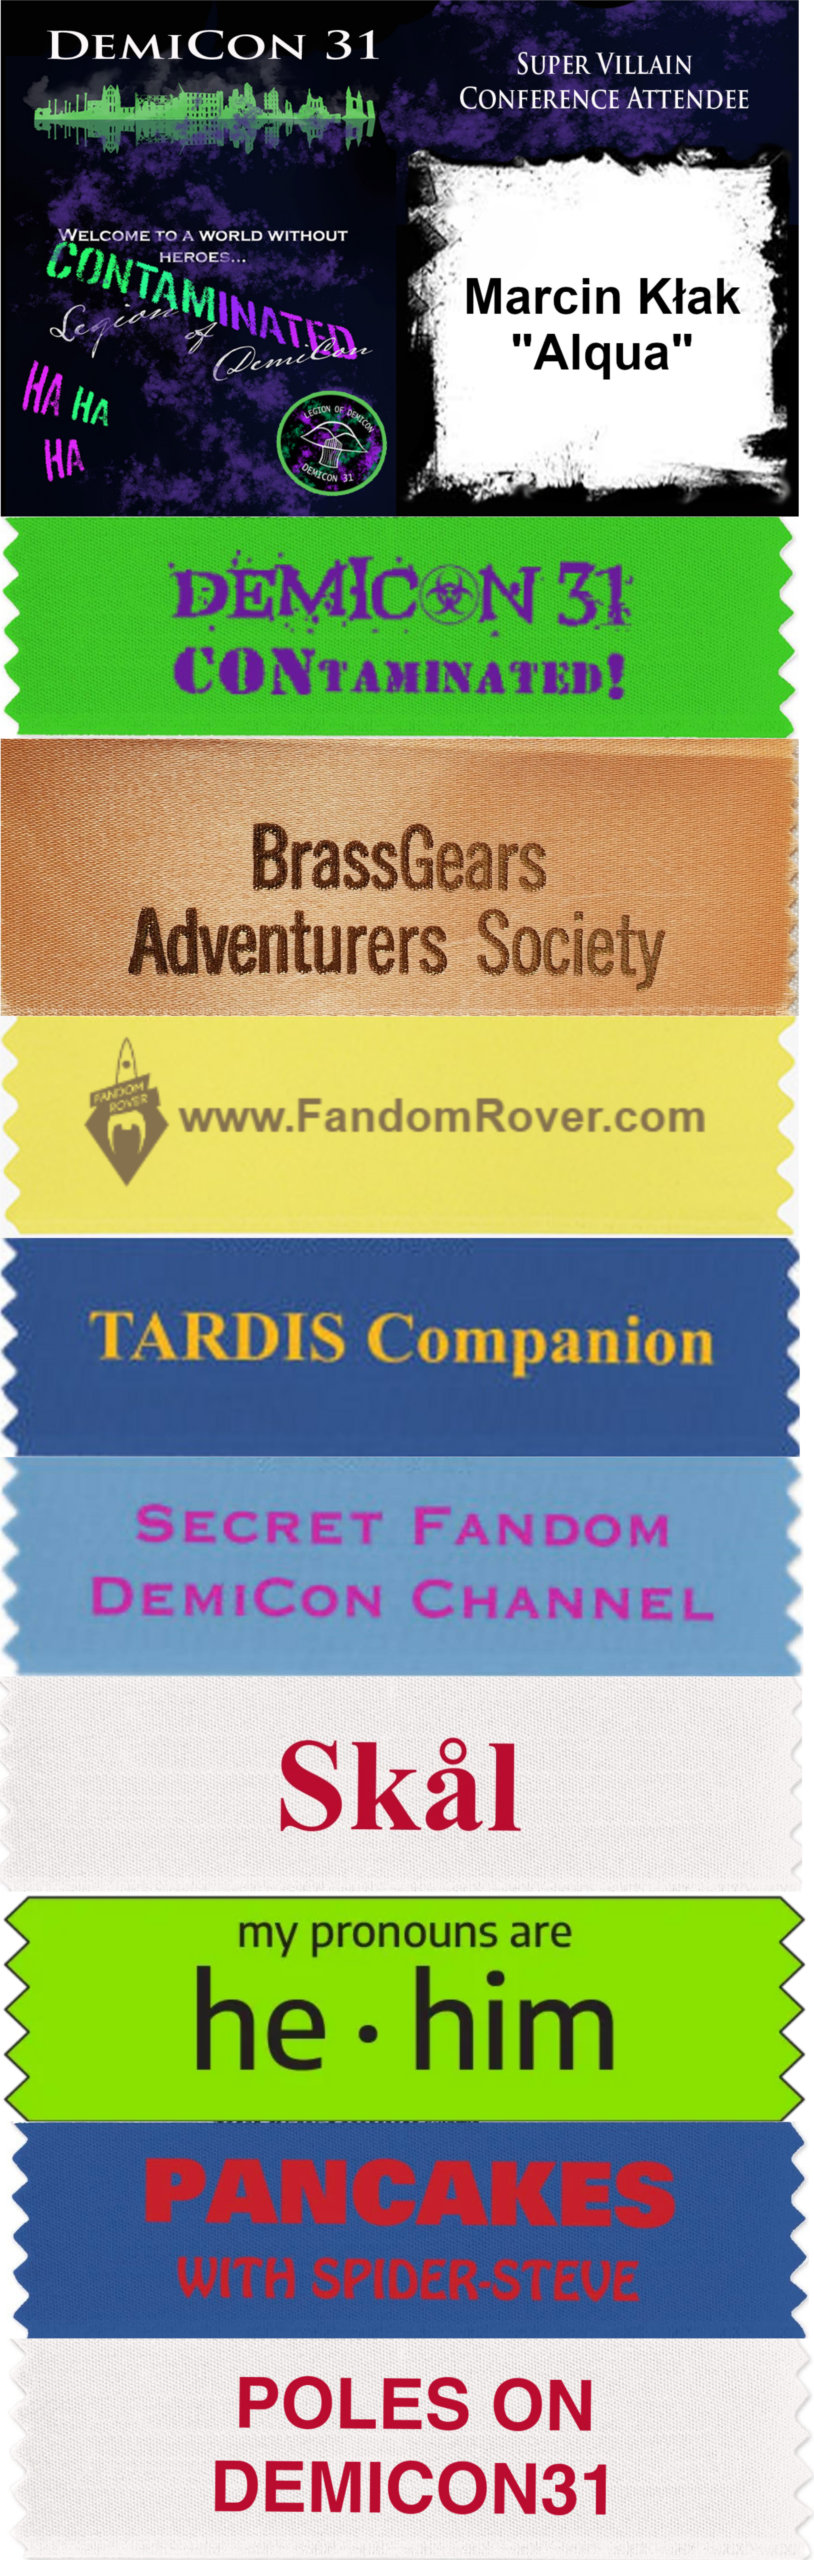 Demicon badge with nine ribbons: Demicon 31, BrassGears Adventurers Society, FandomRover, TARDIS Companion, Secret Fandom DemiCon Channel, Skål, my pronouns are he him, Pancakes with Spider-Steve and Poles on Demicon31.